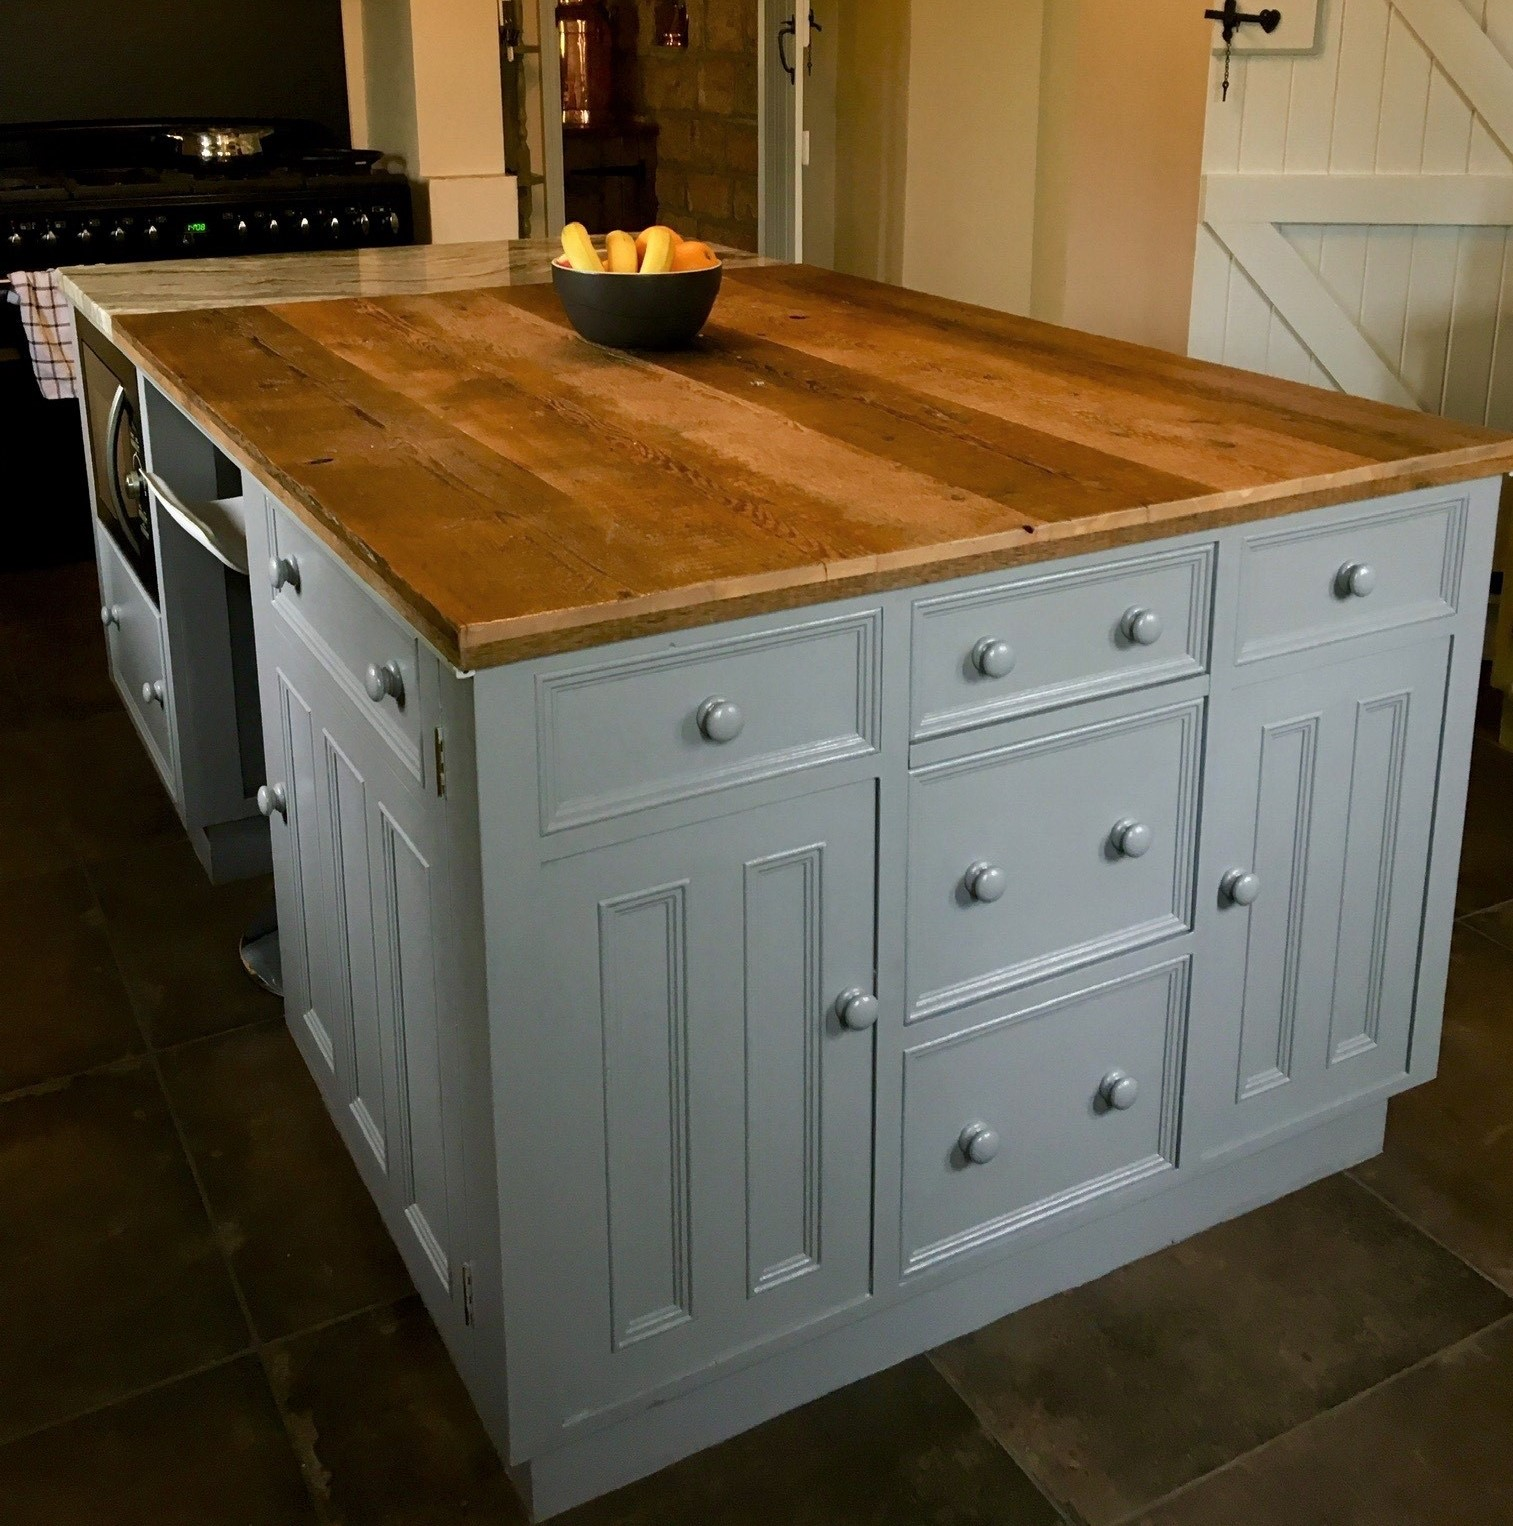 Antique Victorian Floorboards Can be Used as Kitchen Worktops